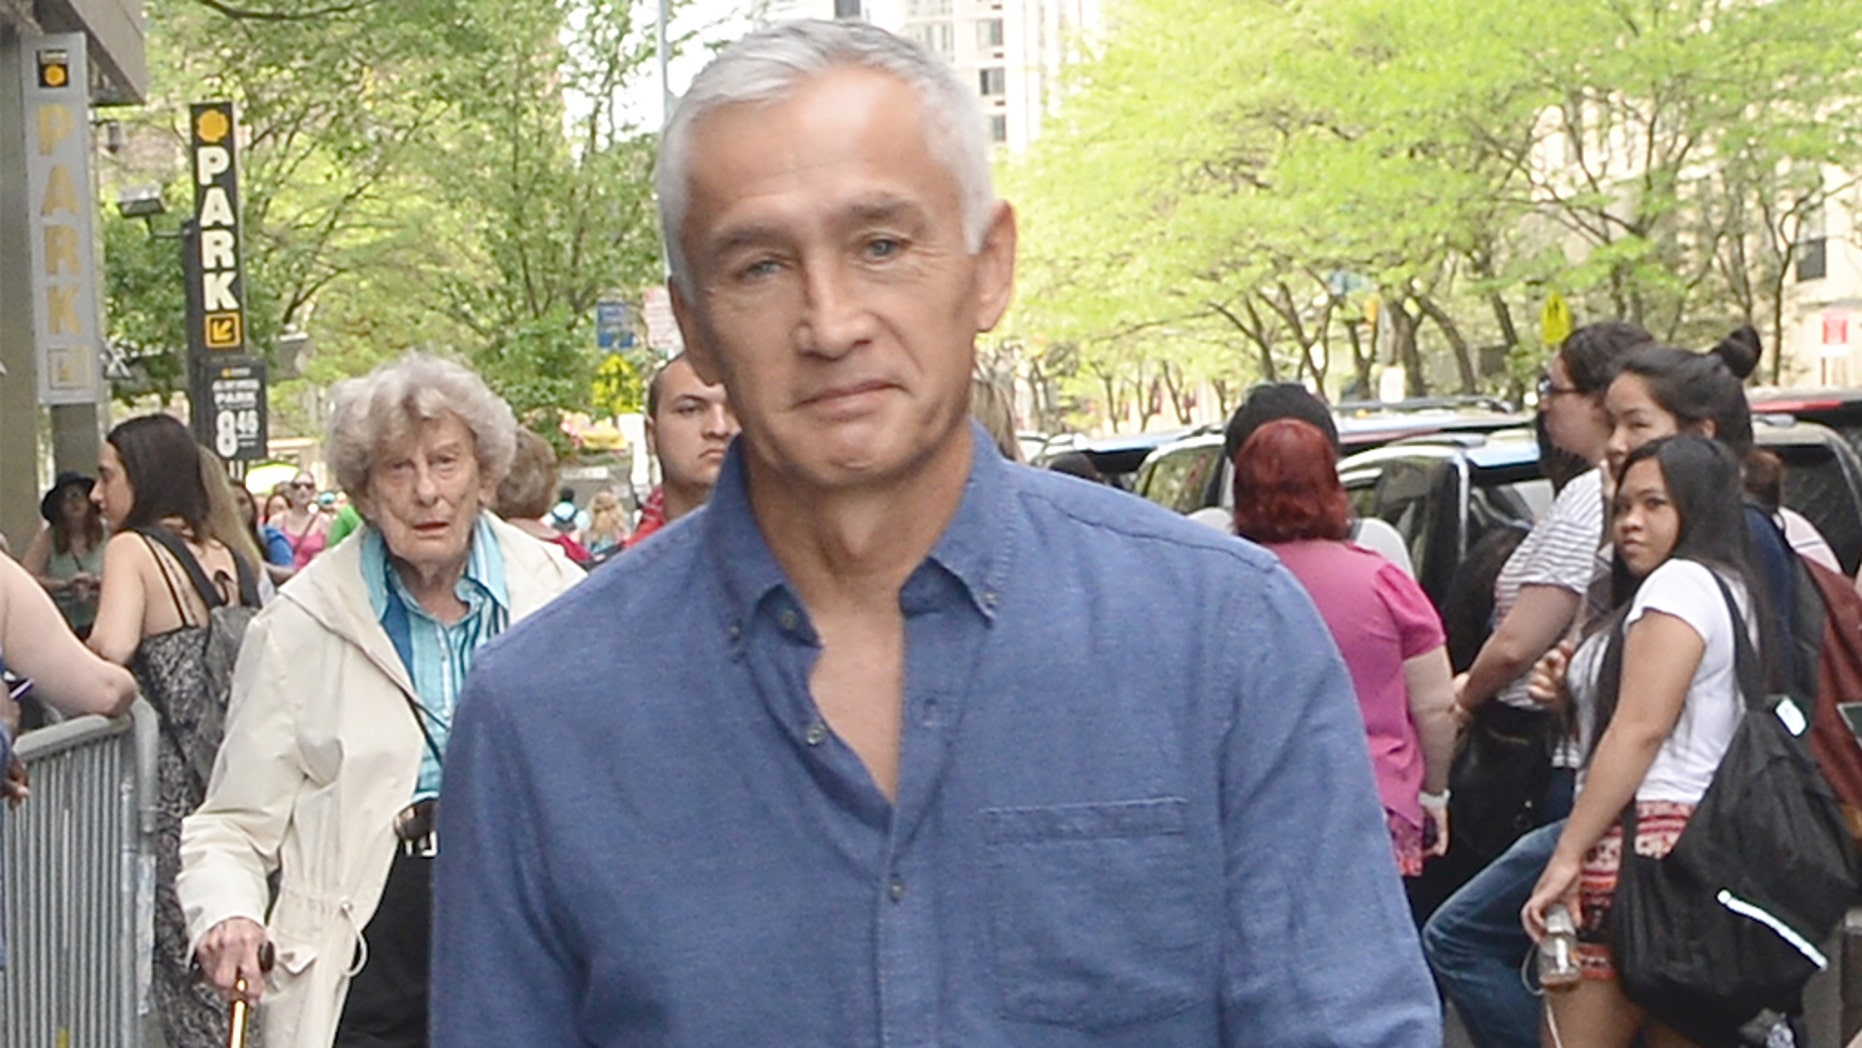 Univision anchor Jorge Ramos detained while interviewing Venezuela's Nicolas Maduro